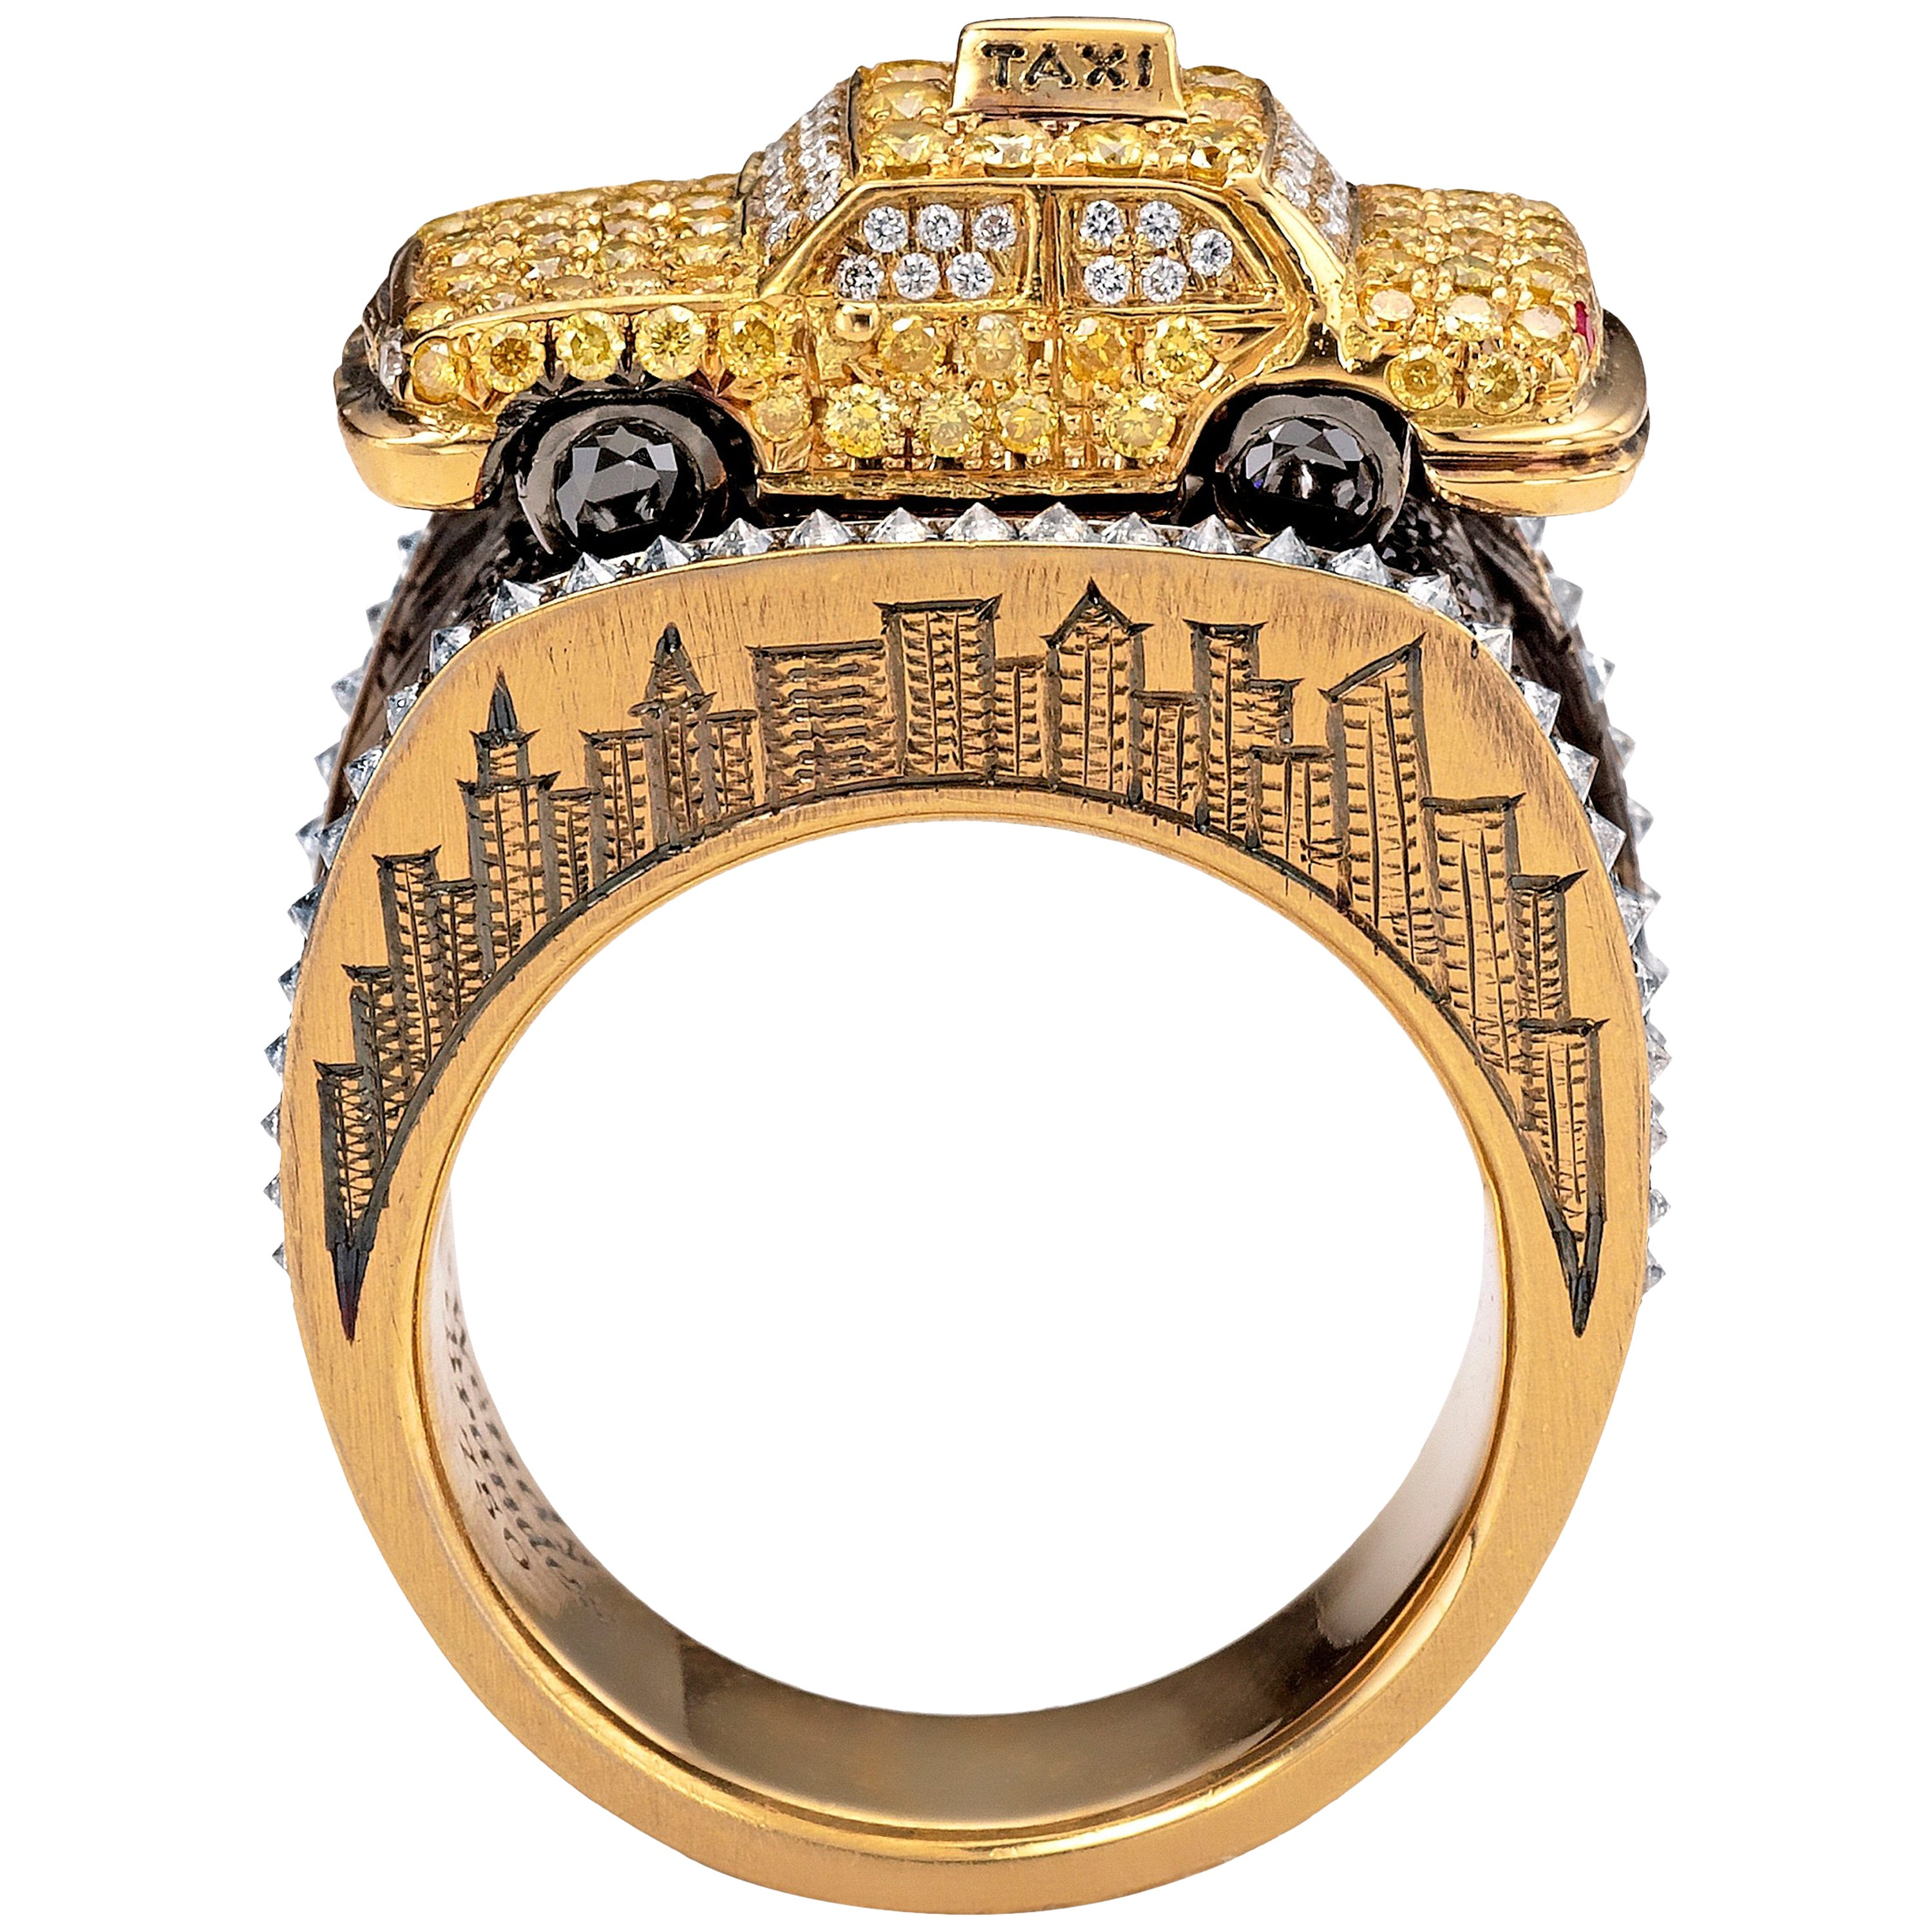 Wendy Brandes Signed Maneater Collection Ring: New York City Taxi and Passenger